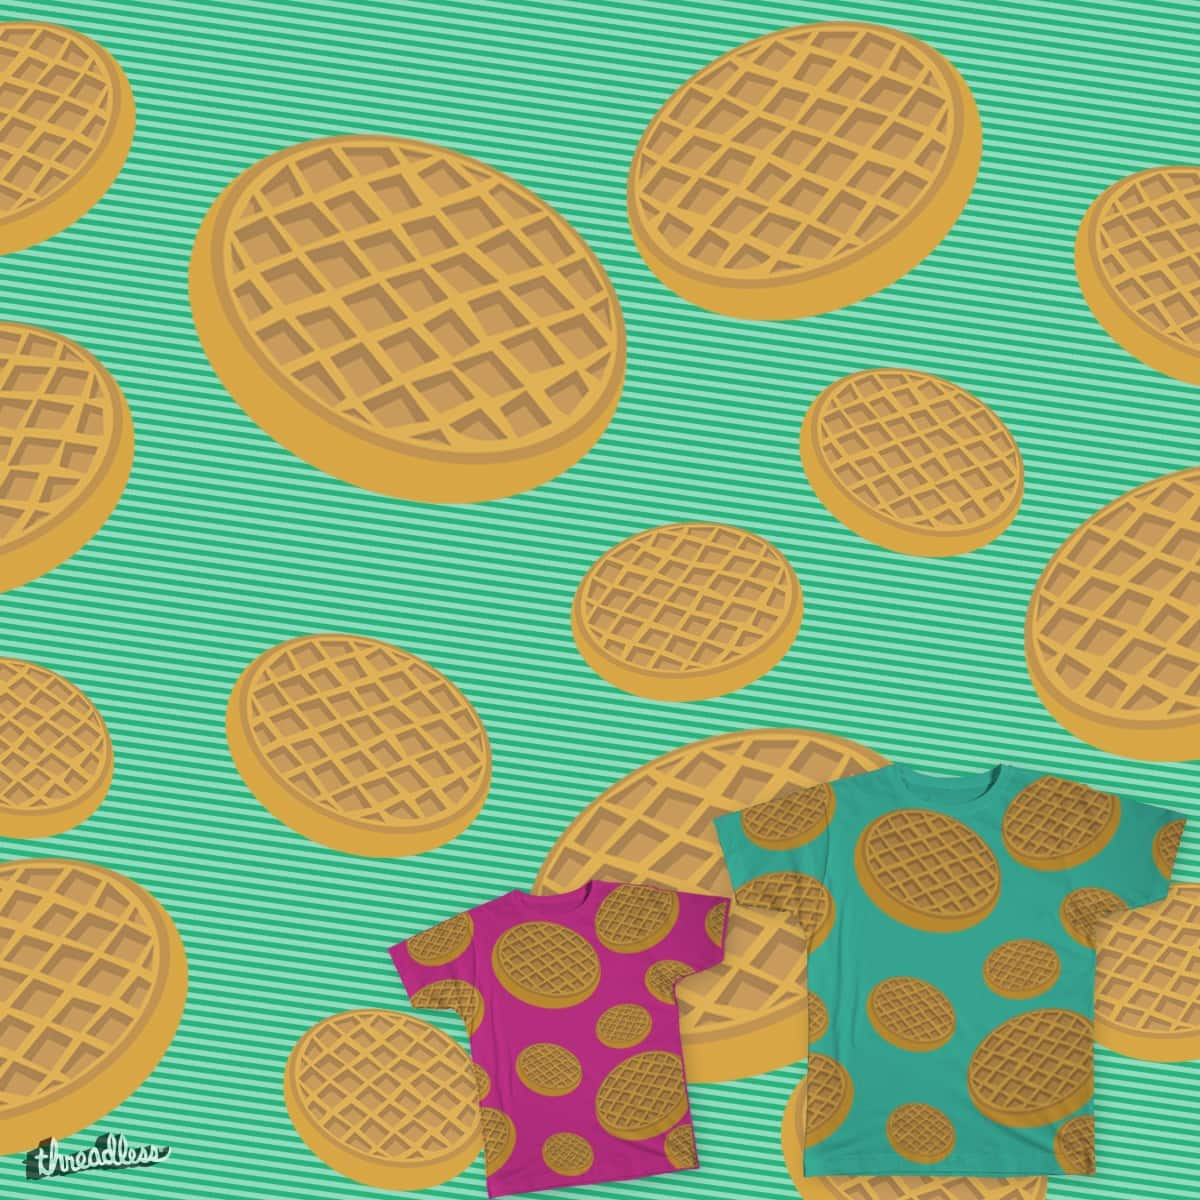 Waffles for everyone by JoniWaffle on Threadless